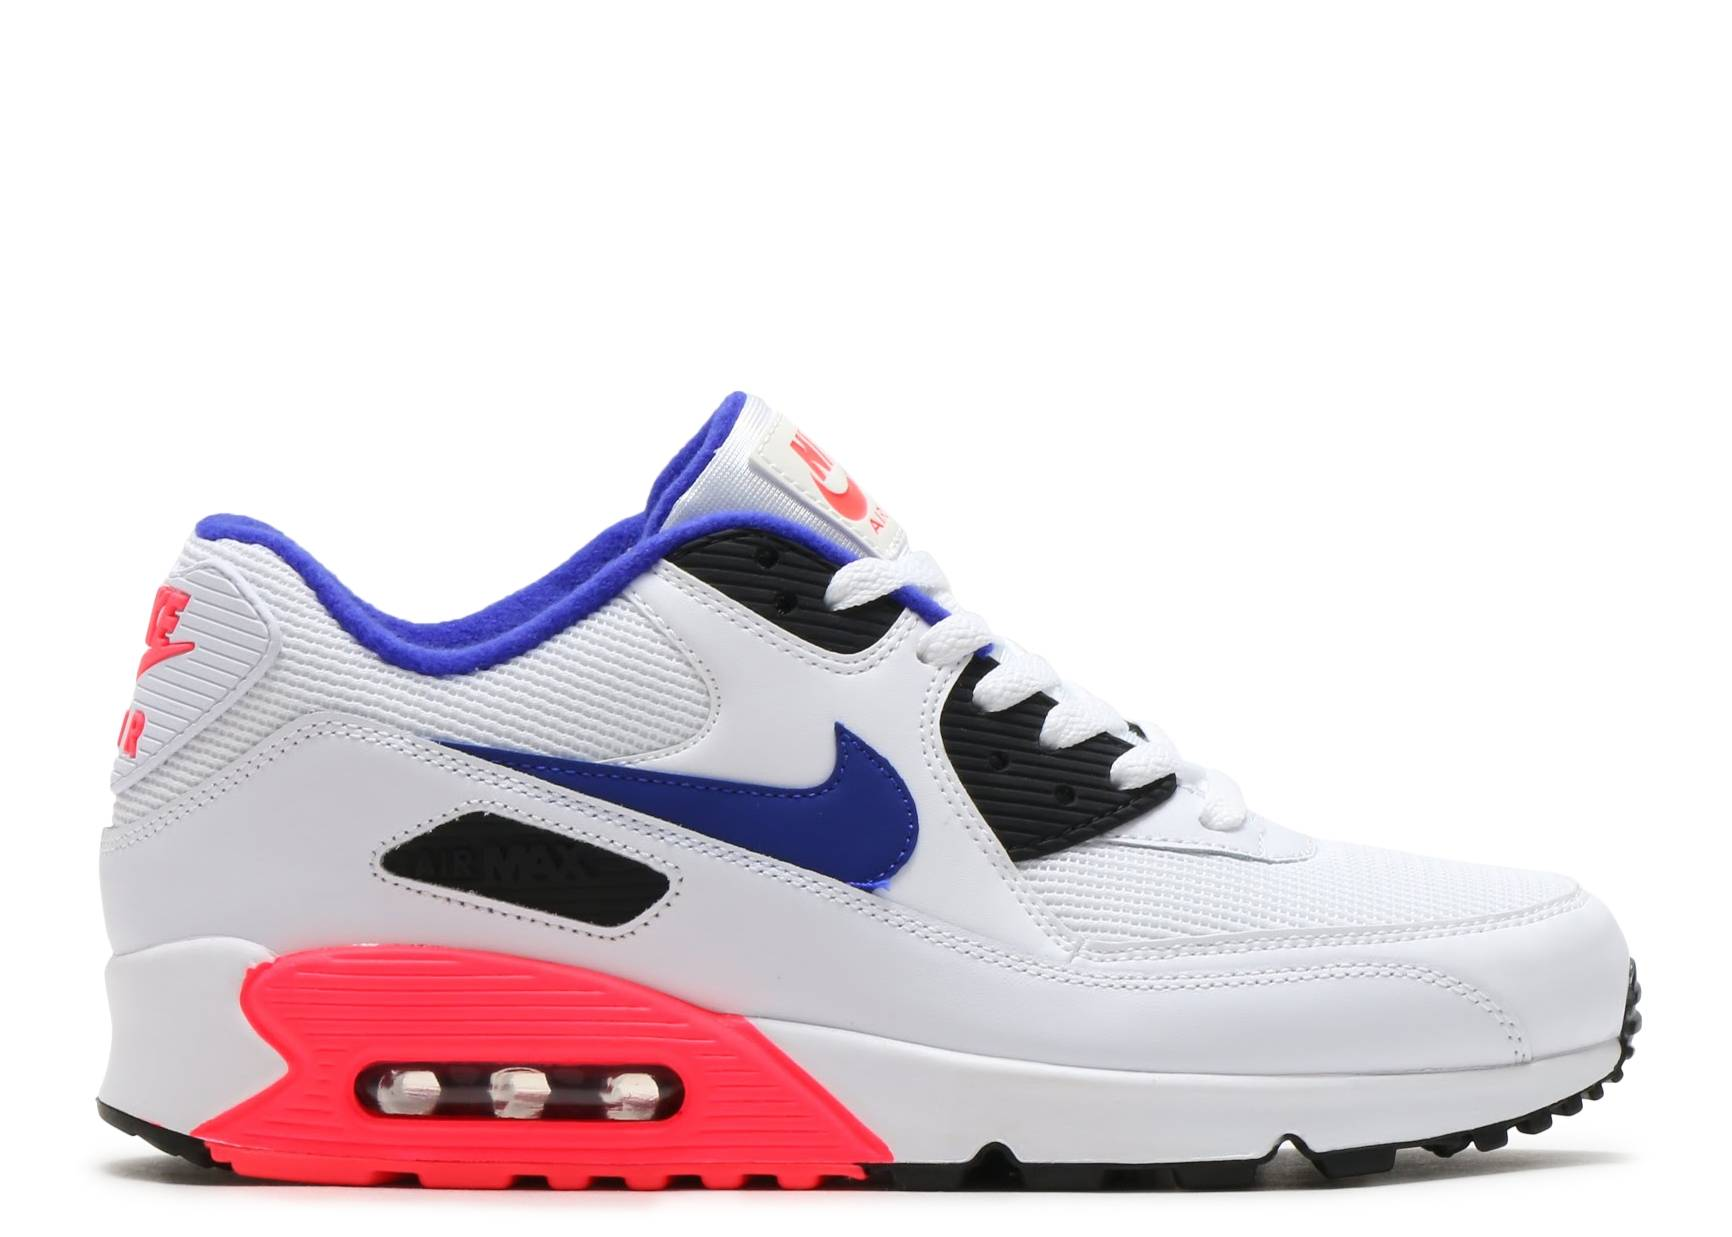 air max 90 essential nike 537384 136 white ultramarine solar red black flight club. Black Bedroom Furniture Sets. Home Design Ideas